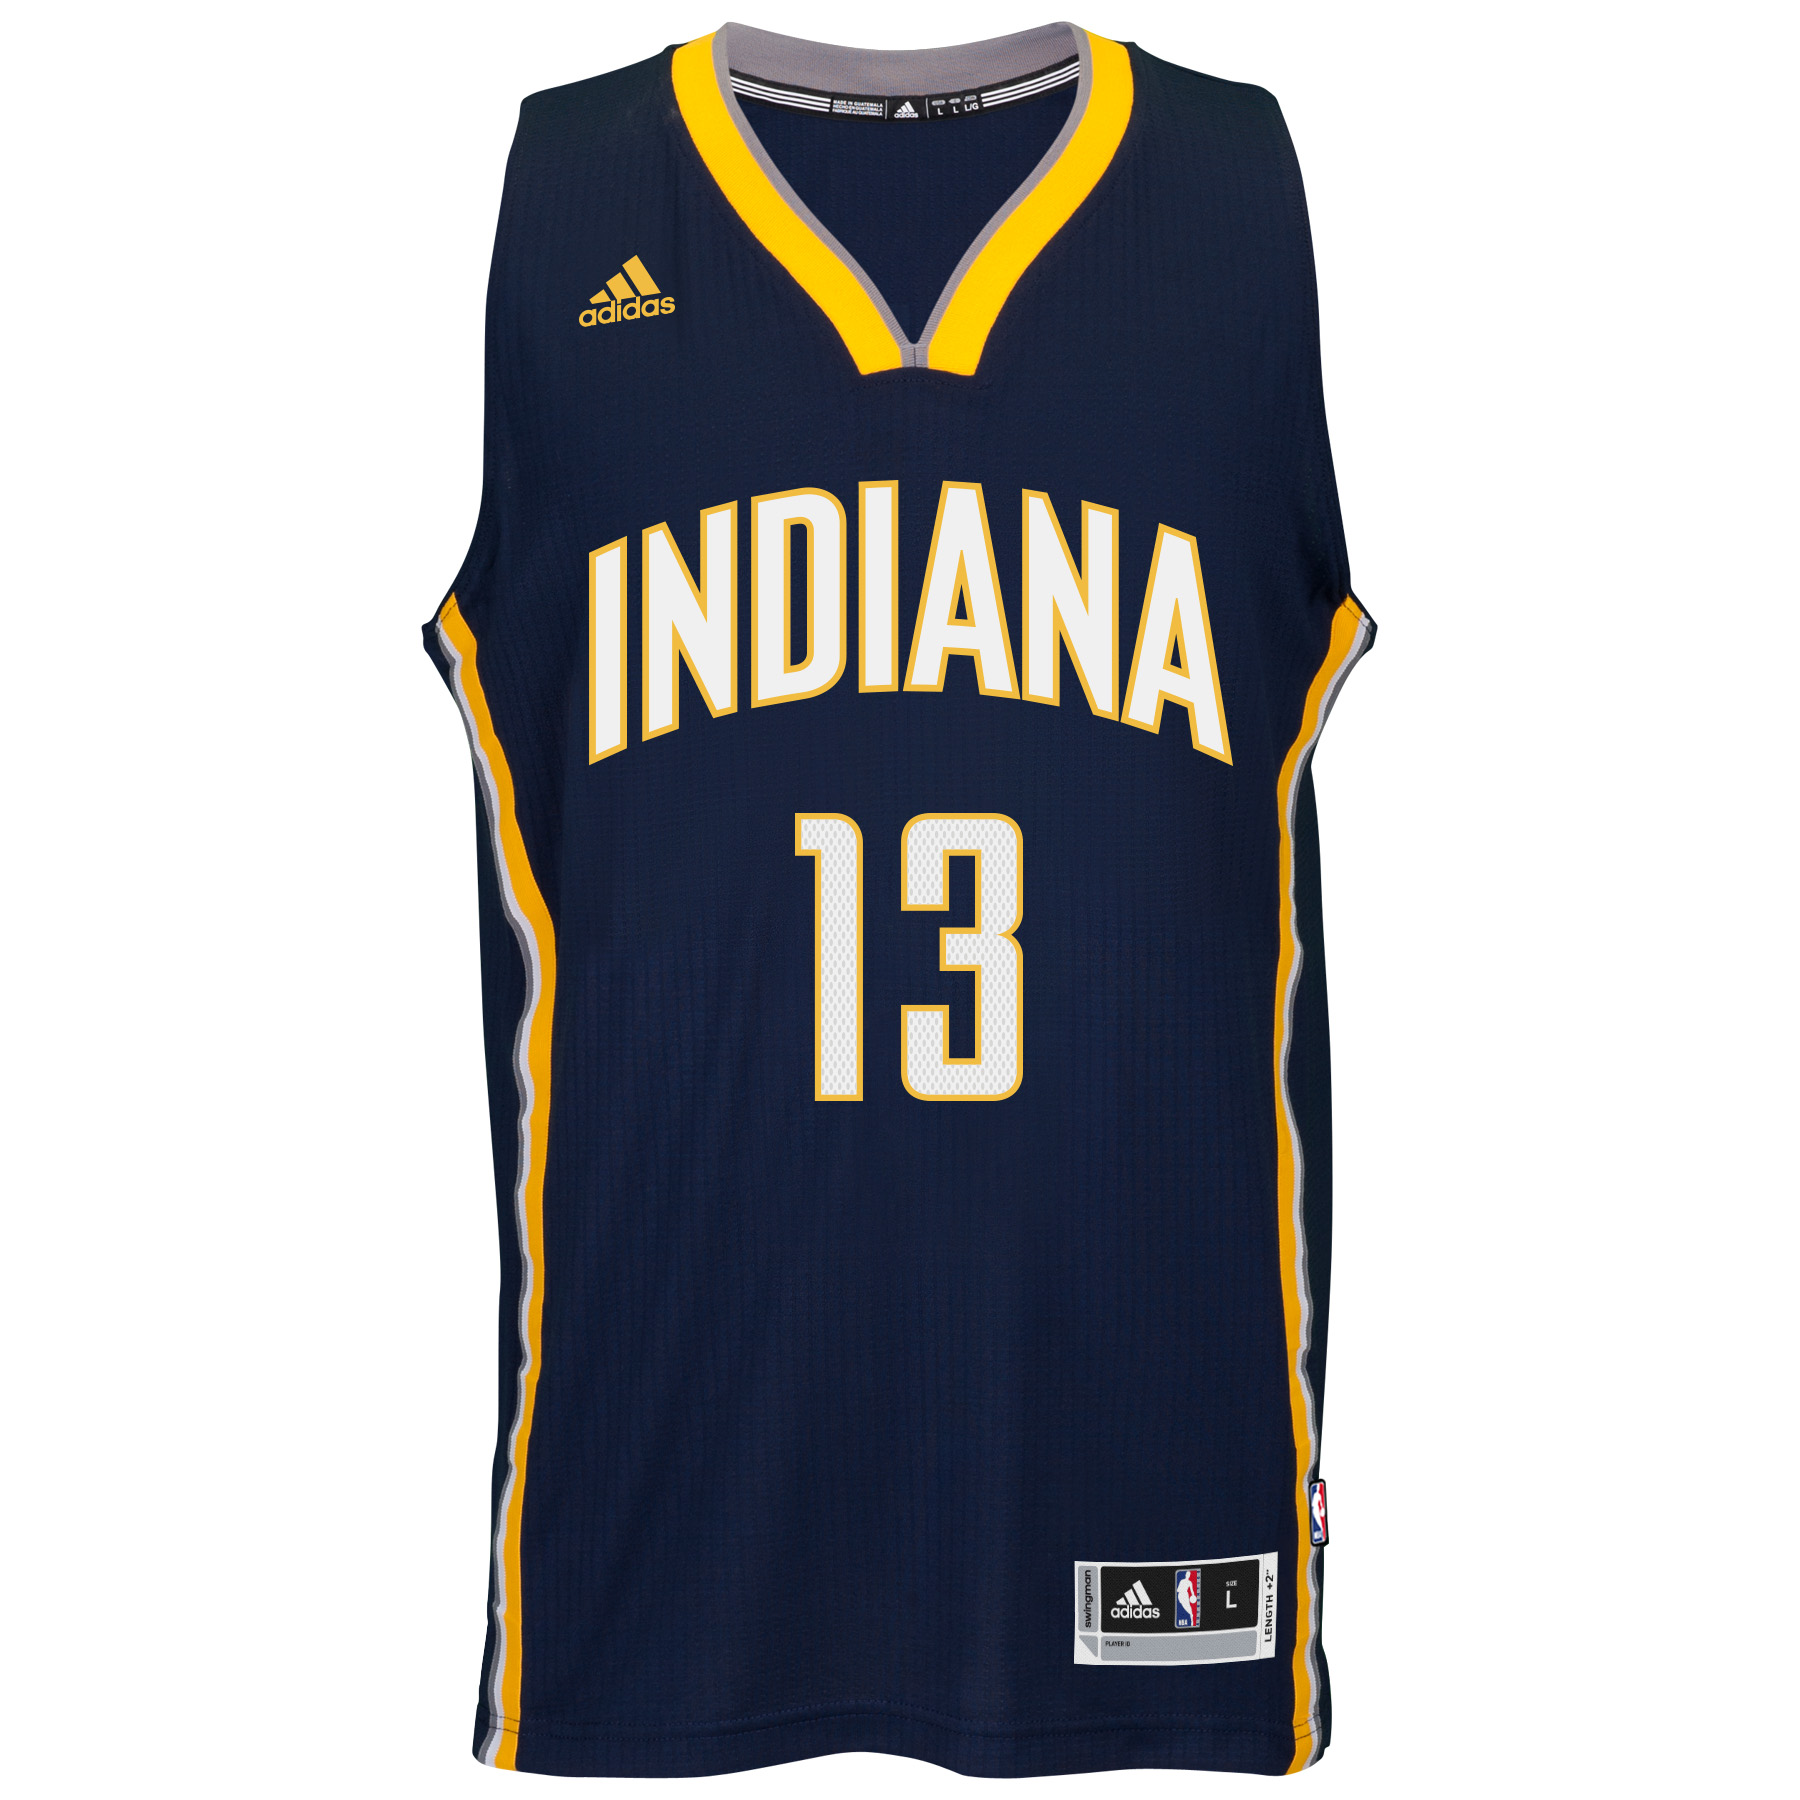 Paul George Indiana Pacers Adidas NBA Swingman Jersey - Blue